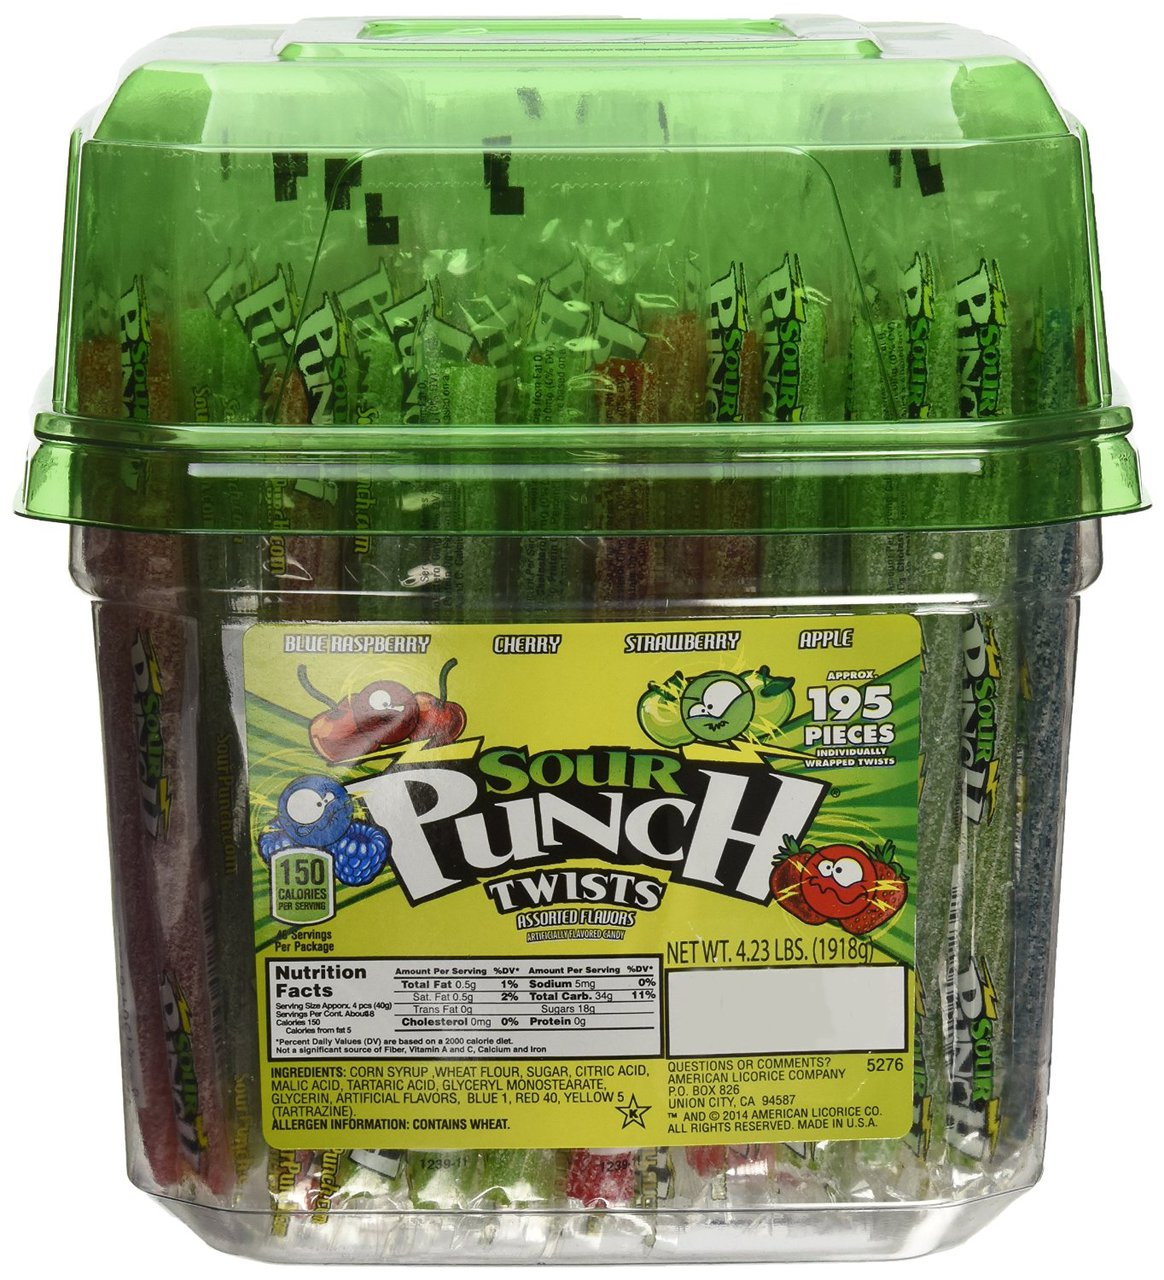 6 PACKS : Wrapped Sour Punch Candy Straw Twists 4 Flavors - 195 Ct. Tub,4.23LBS